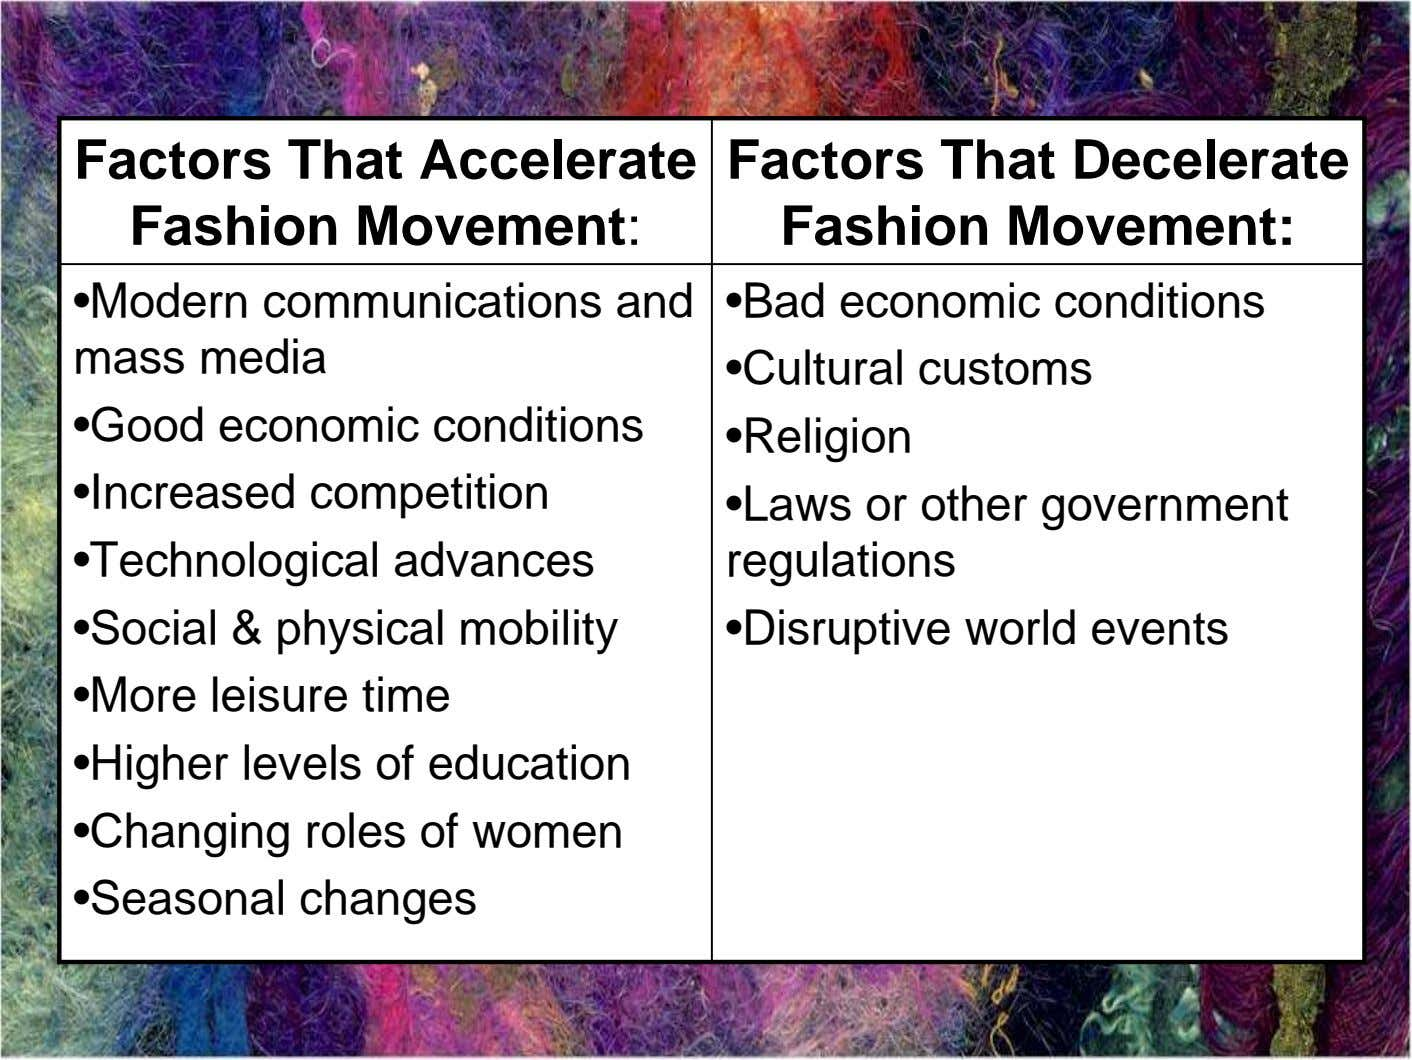 Factors That Accelerate Fashion Movement: Factors That Decelerate Fashion Movement: •Modern communications and mass